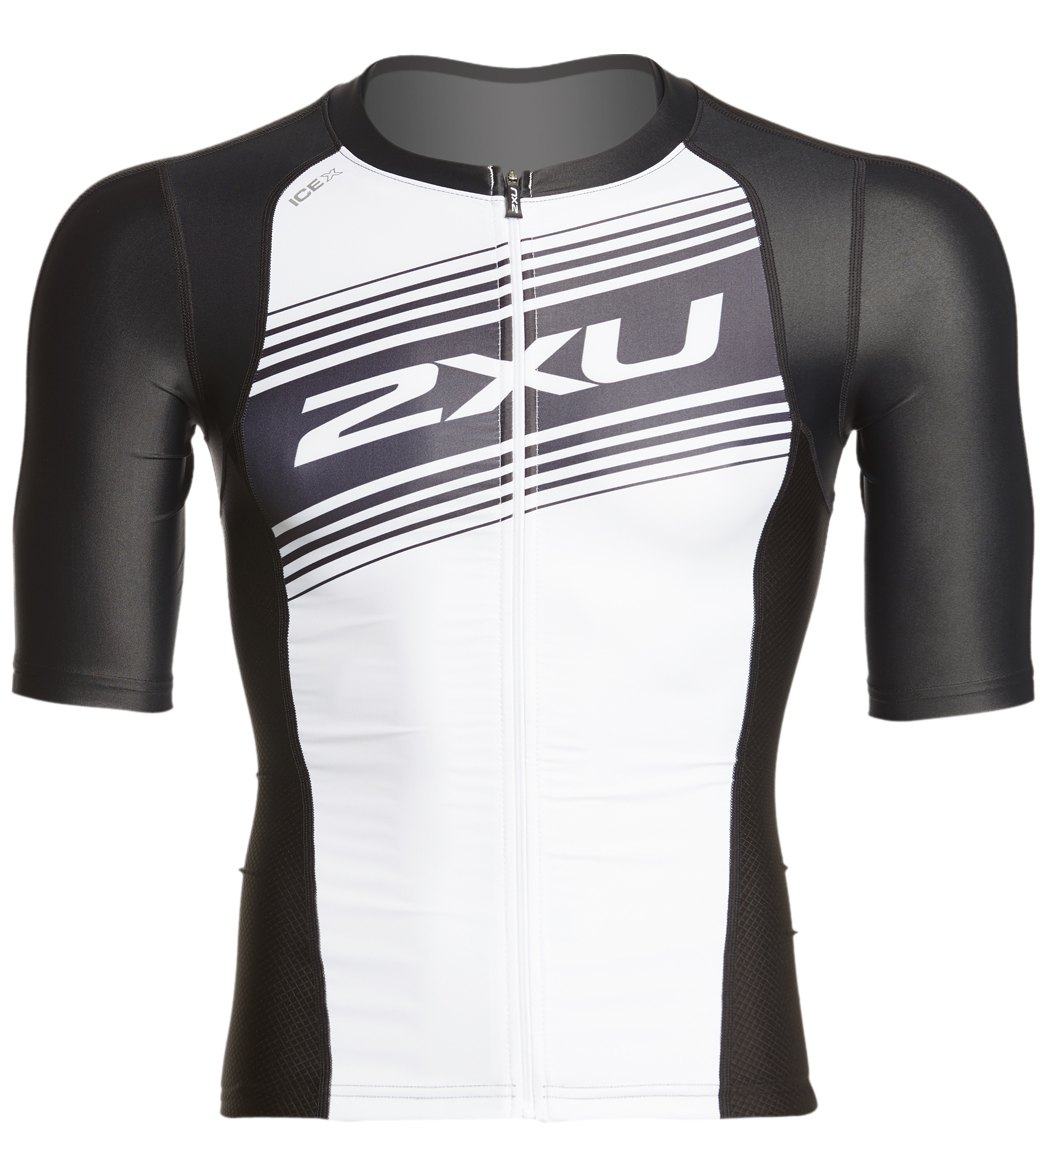 e195d905e25 2XU Men s Compression Sleeved Tri Top at SwimOutlet.com - Free Shipping